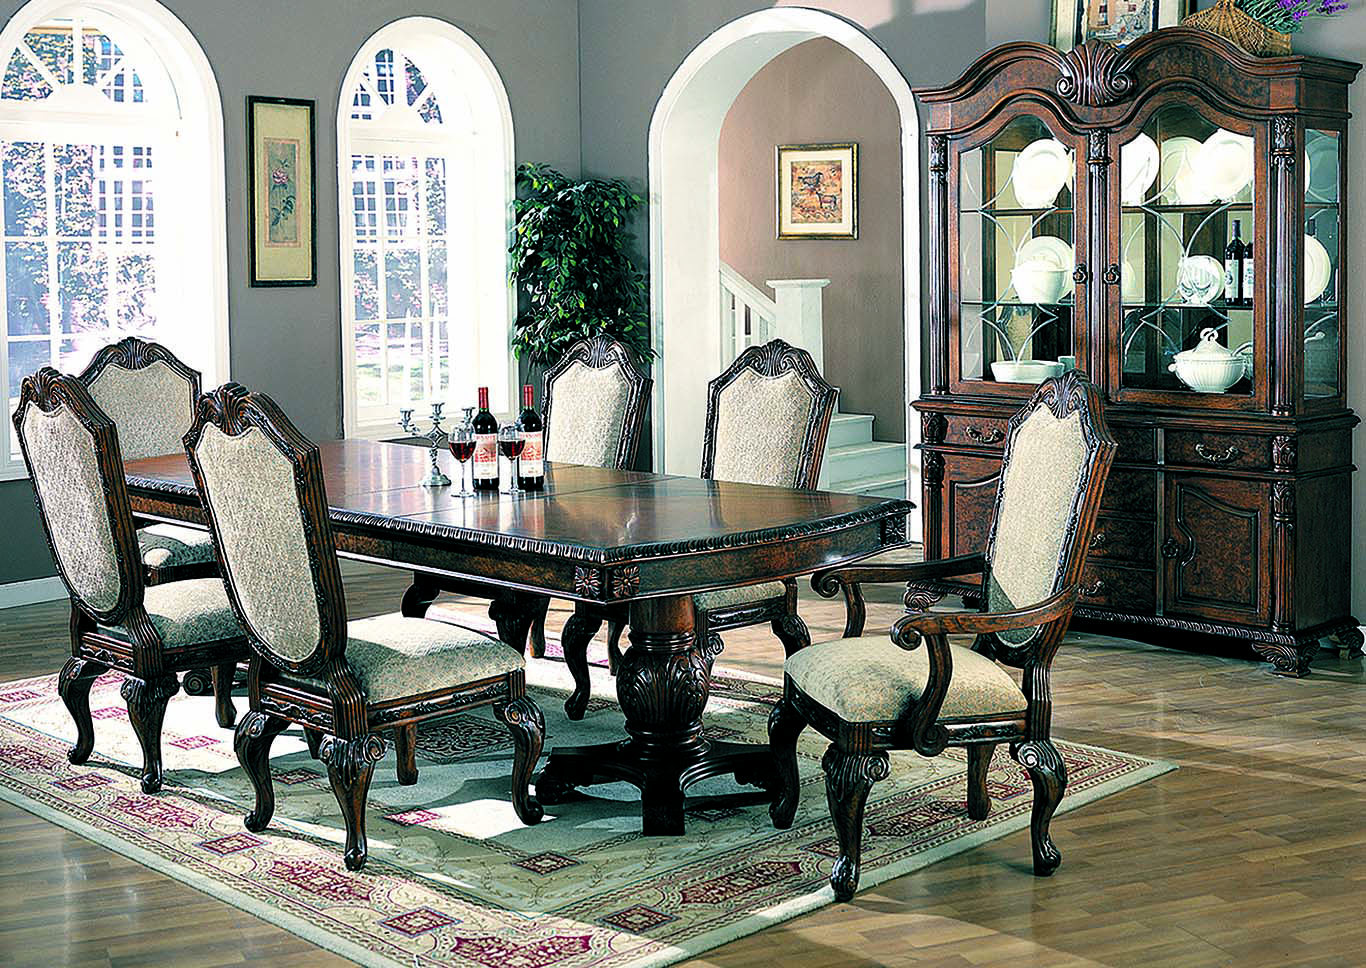 Saint Charles Brown Dining Table w/4 Side Chairs & 2 Arm Chairs,Coaster Furniture